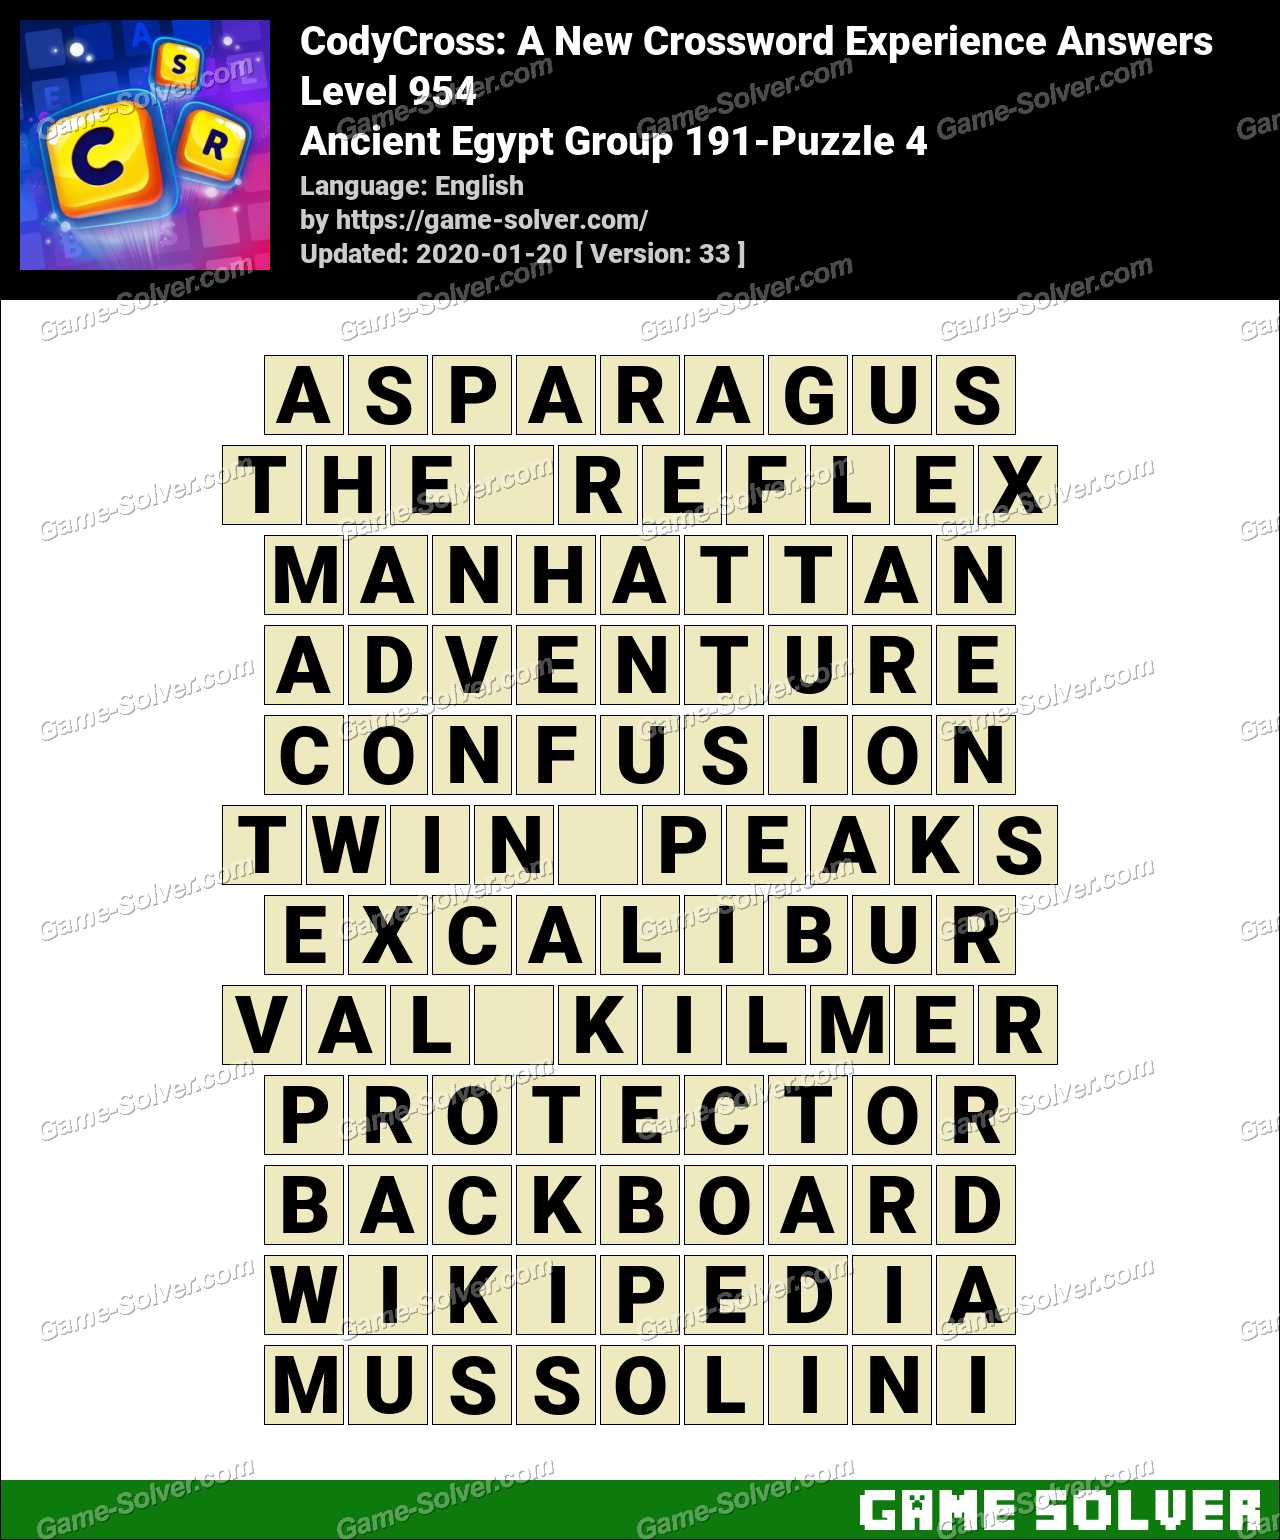 CodyCross Ancient Egypt Group 191-Puzzle 4 Answers